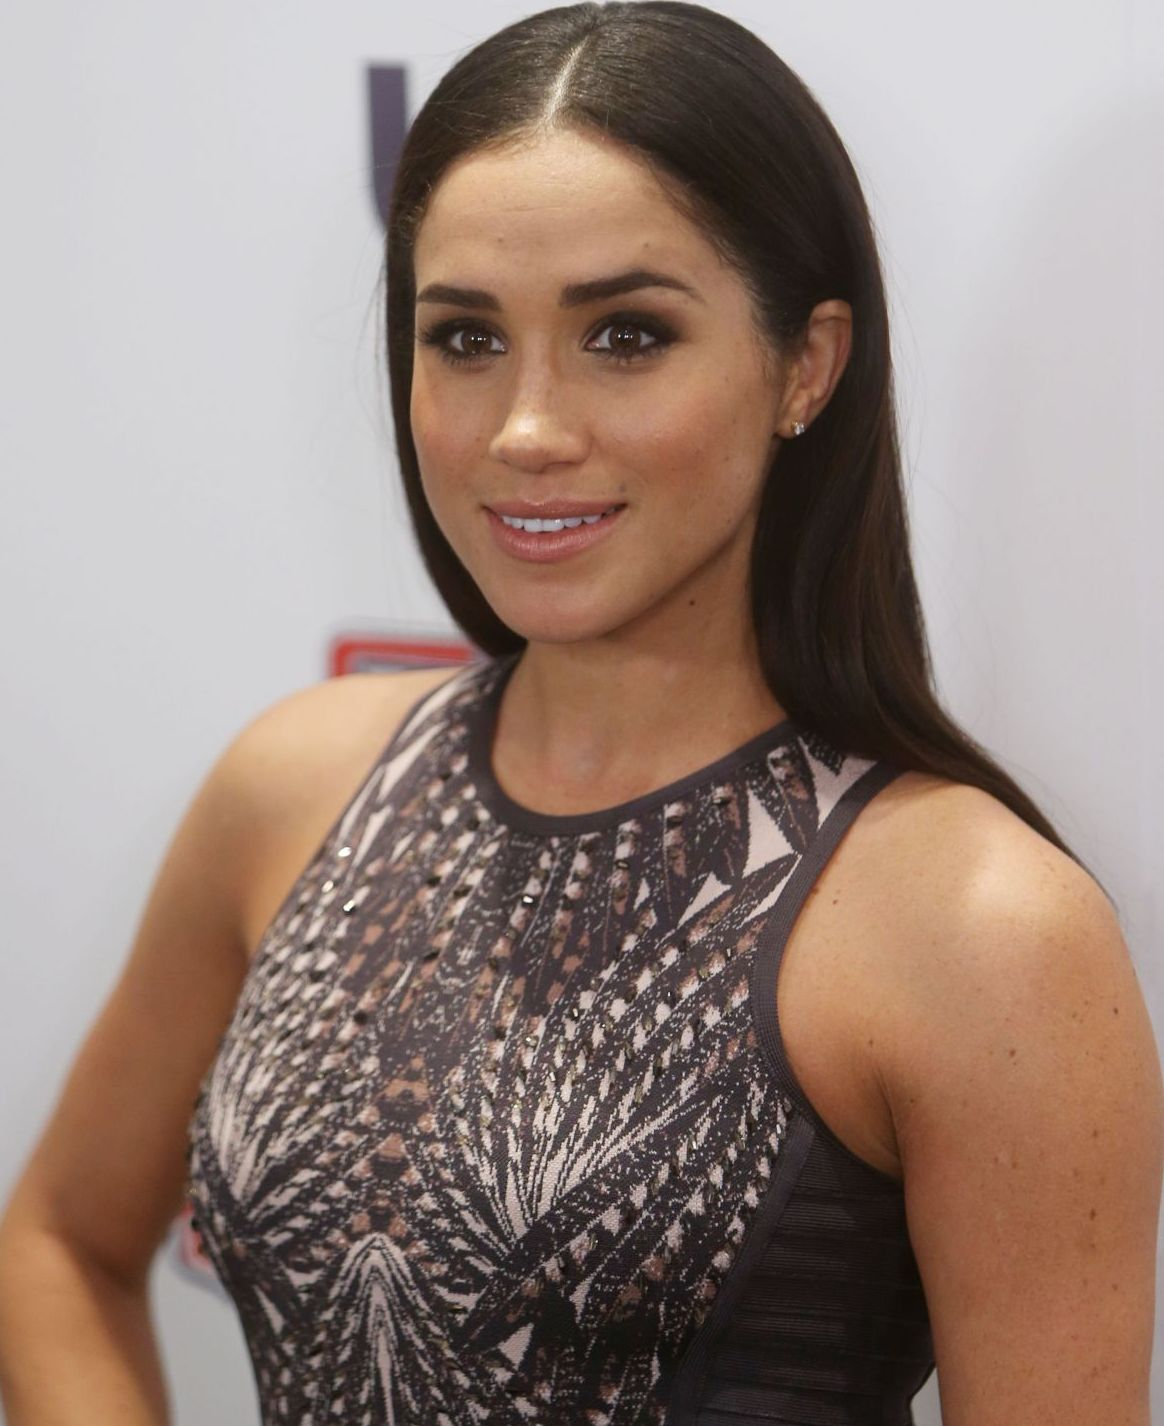 Meghan markle biography -  Celebrity Biography And Photos Meghan Markle